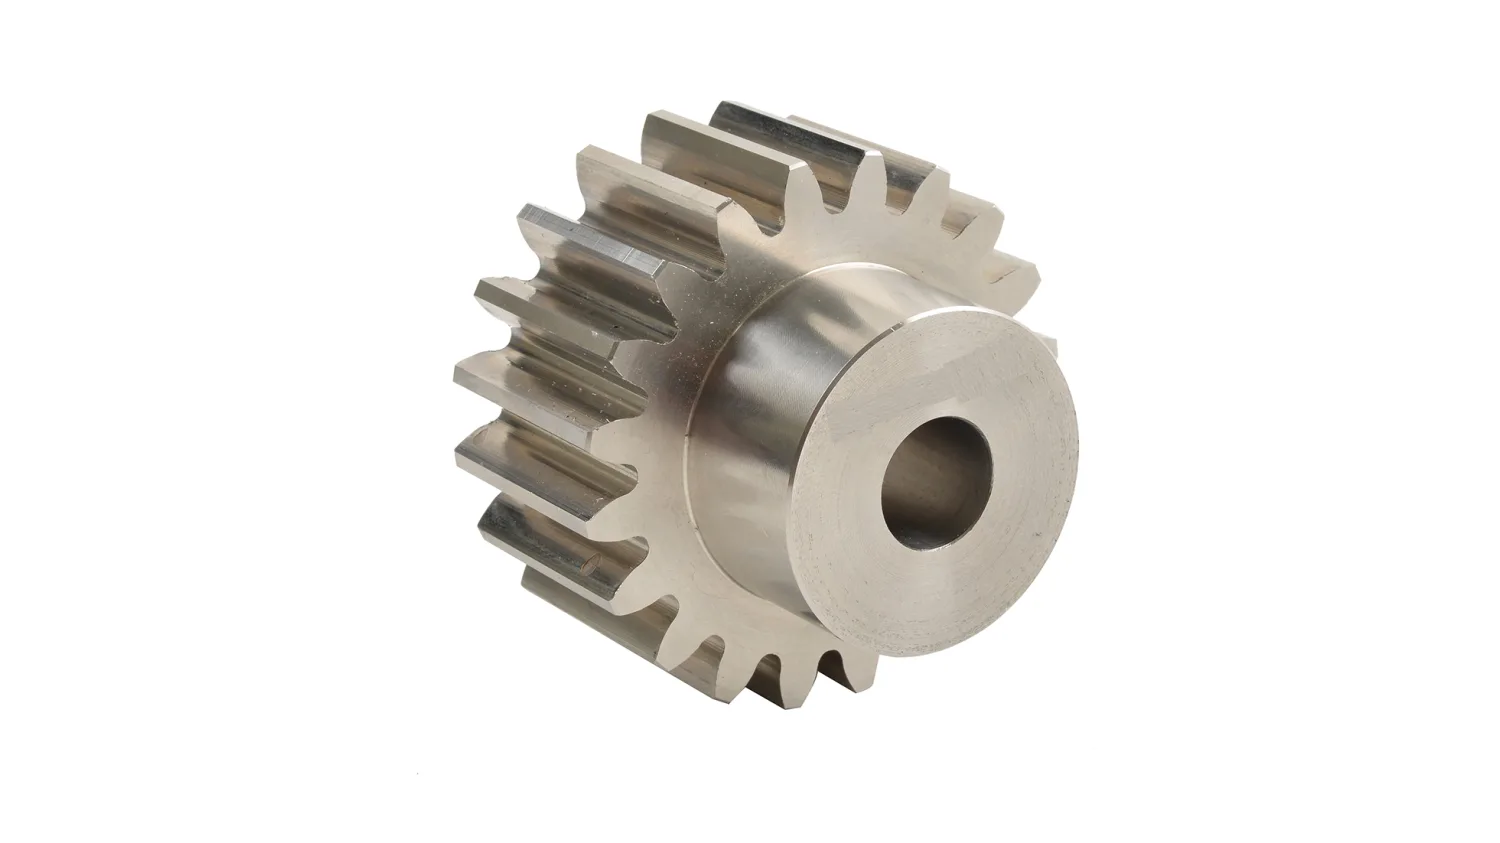 0-8-Mod-x-35-Tooth-Metric-Spur-Gear-in-Steel